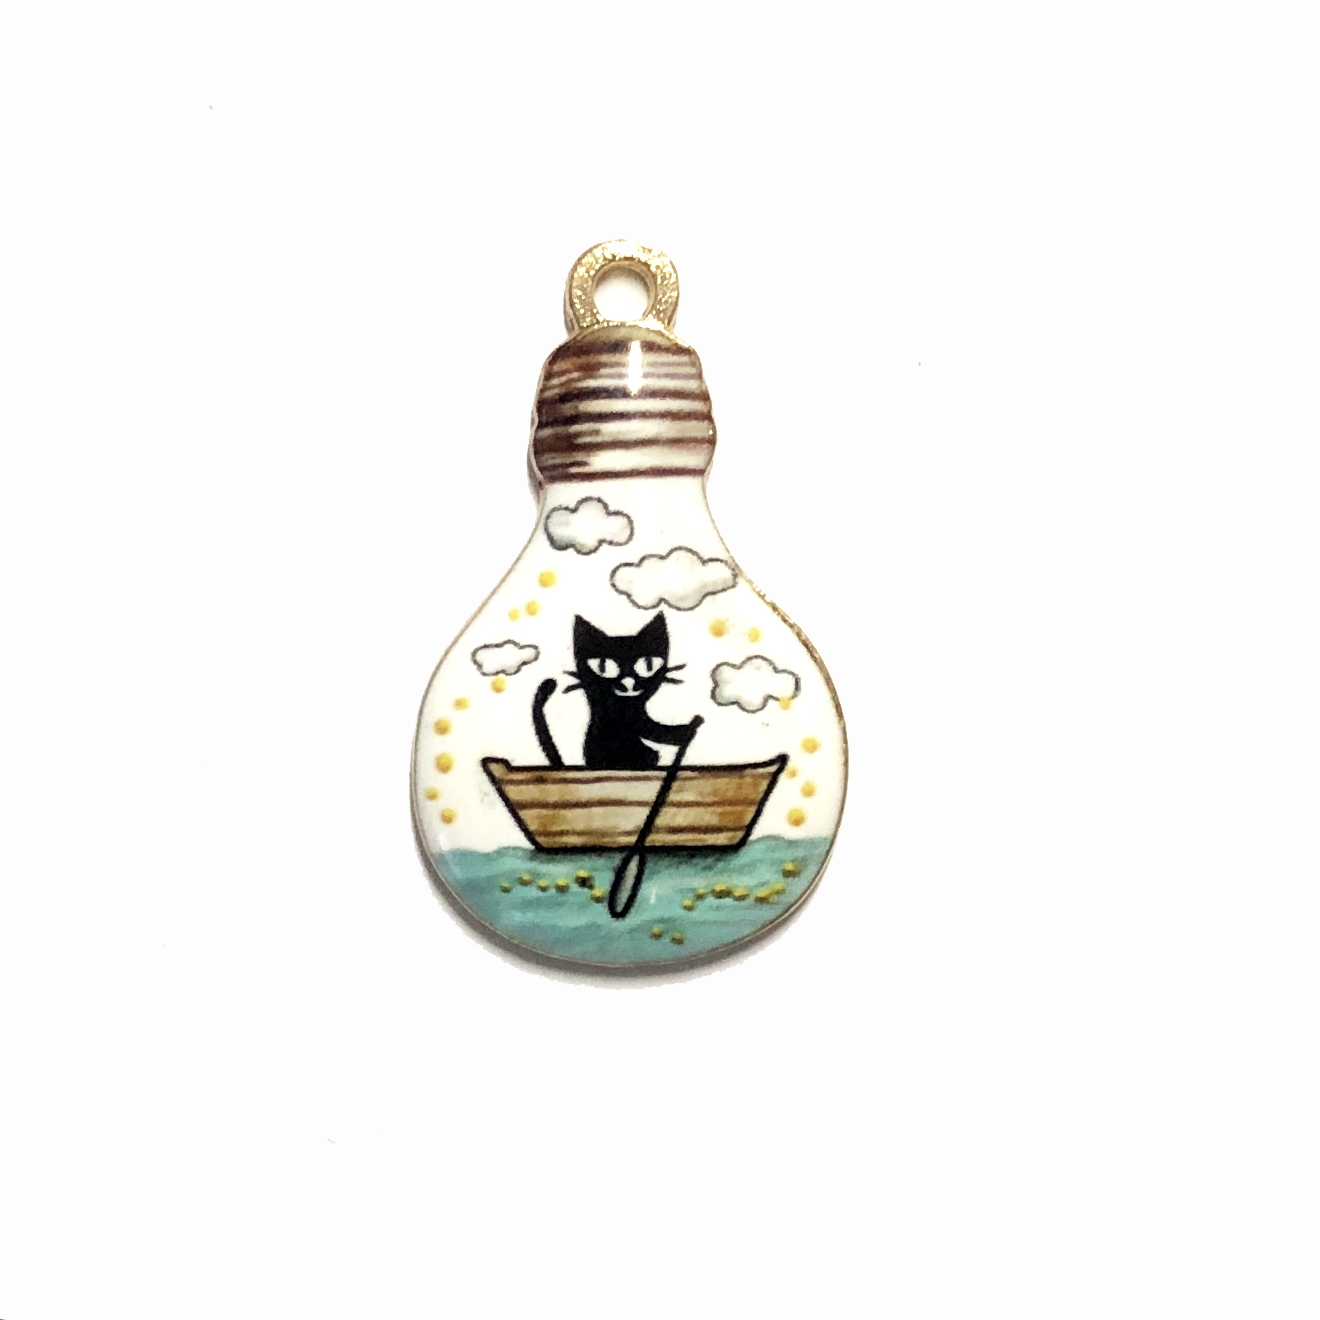 light bulb charm,  enamel charms, cat in boat charm, kitty, cat, charm, pendant, 28 x 17mm, B'sue Boutiques, jewelry making, vintage supplies, jewelry supplies, jewelry findings, 09995